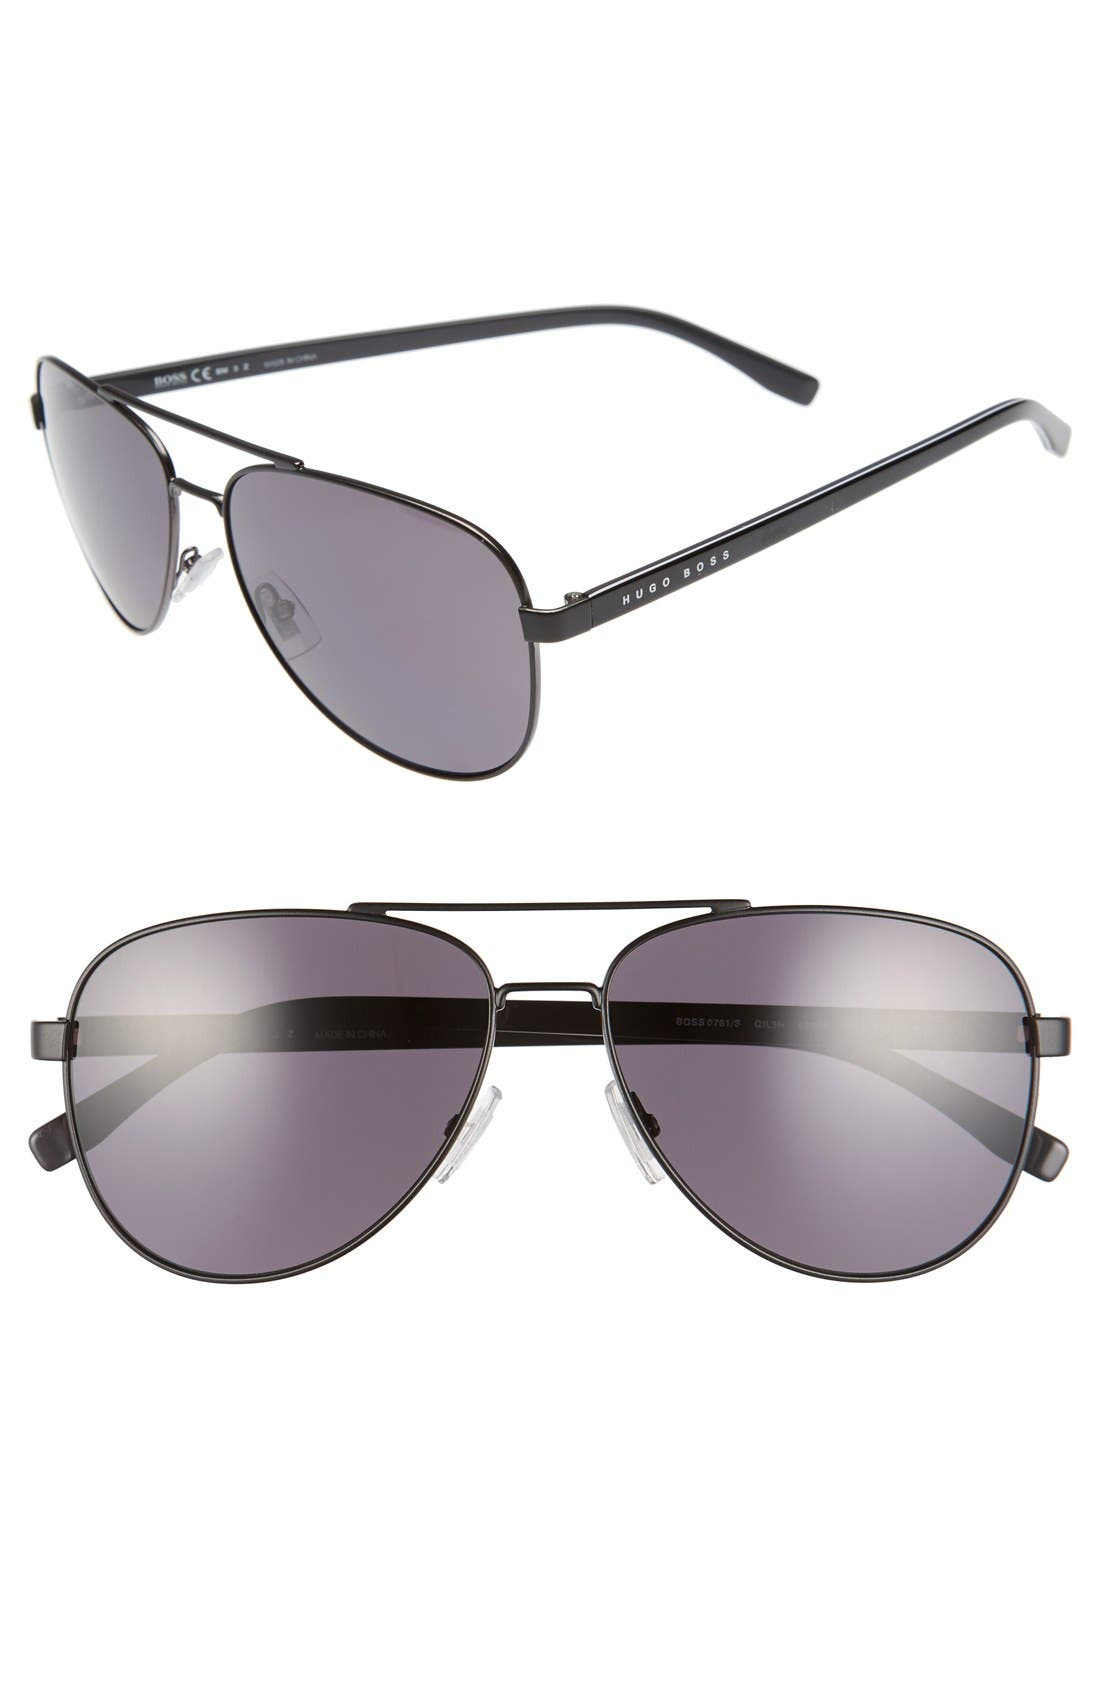 BOSS 0761/S 60mm Polarized Aviator Sunglasses